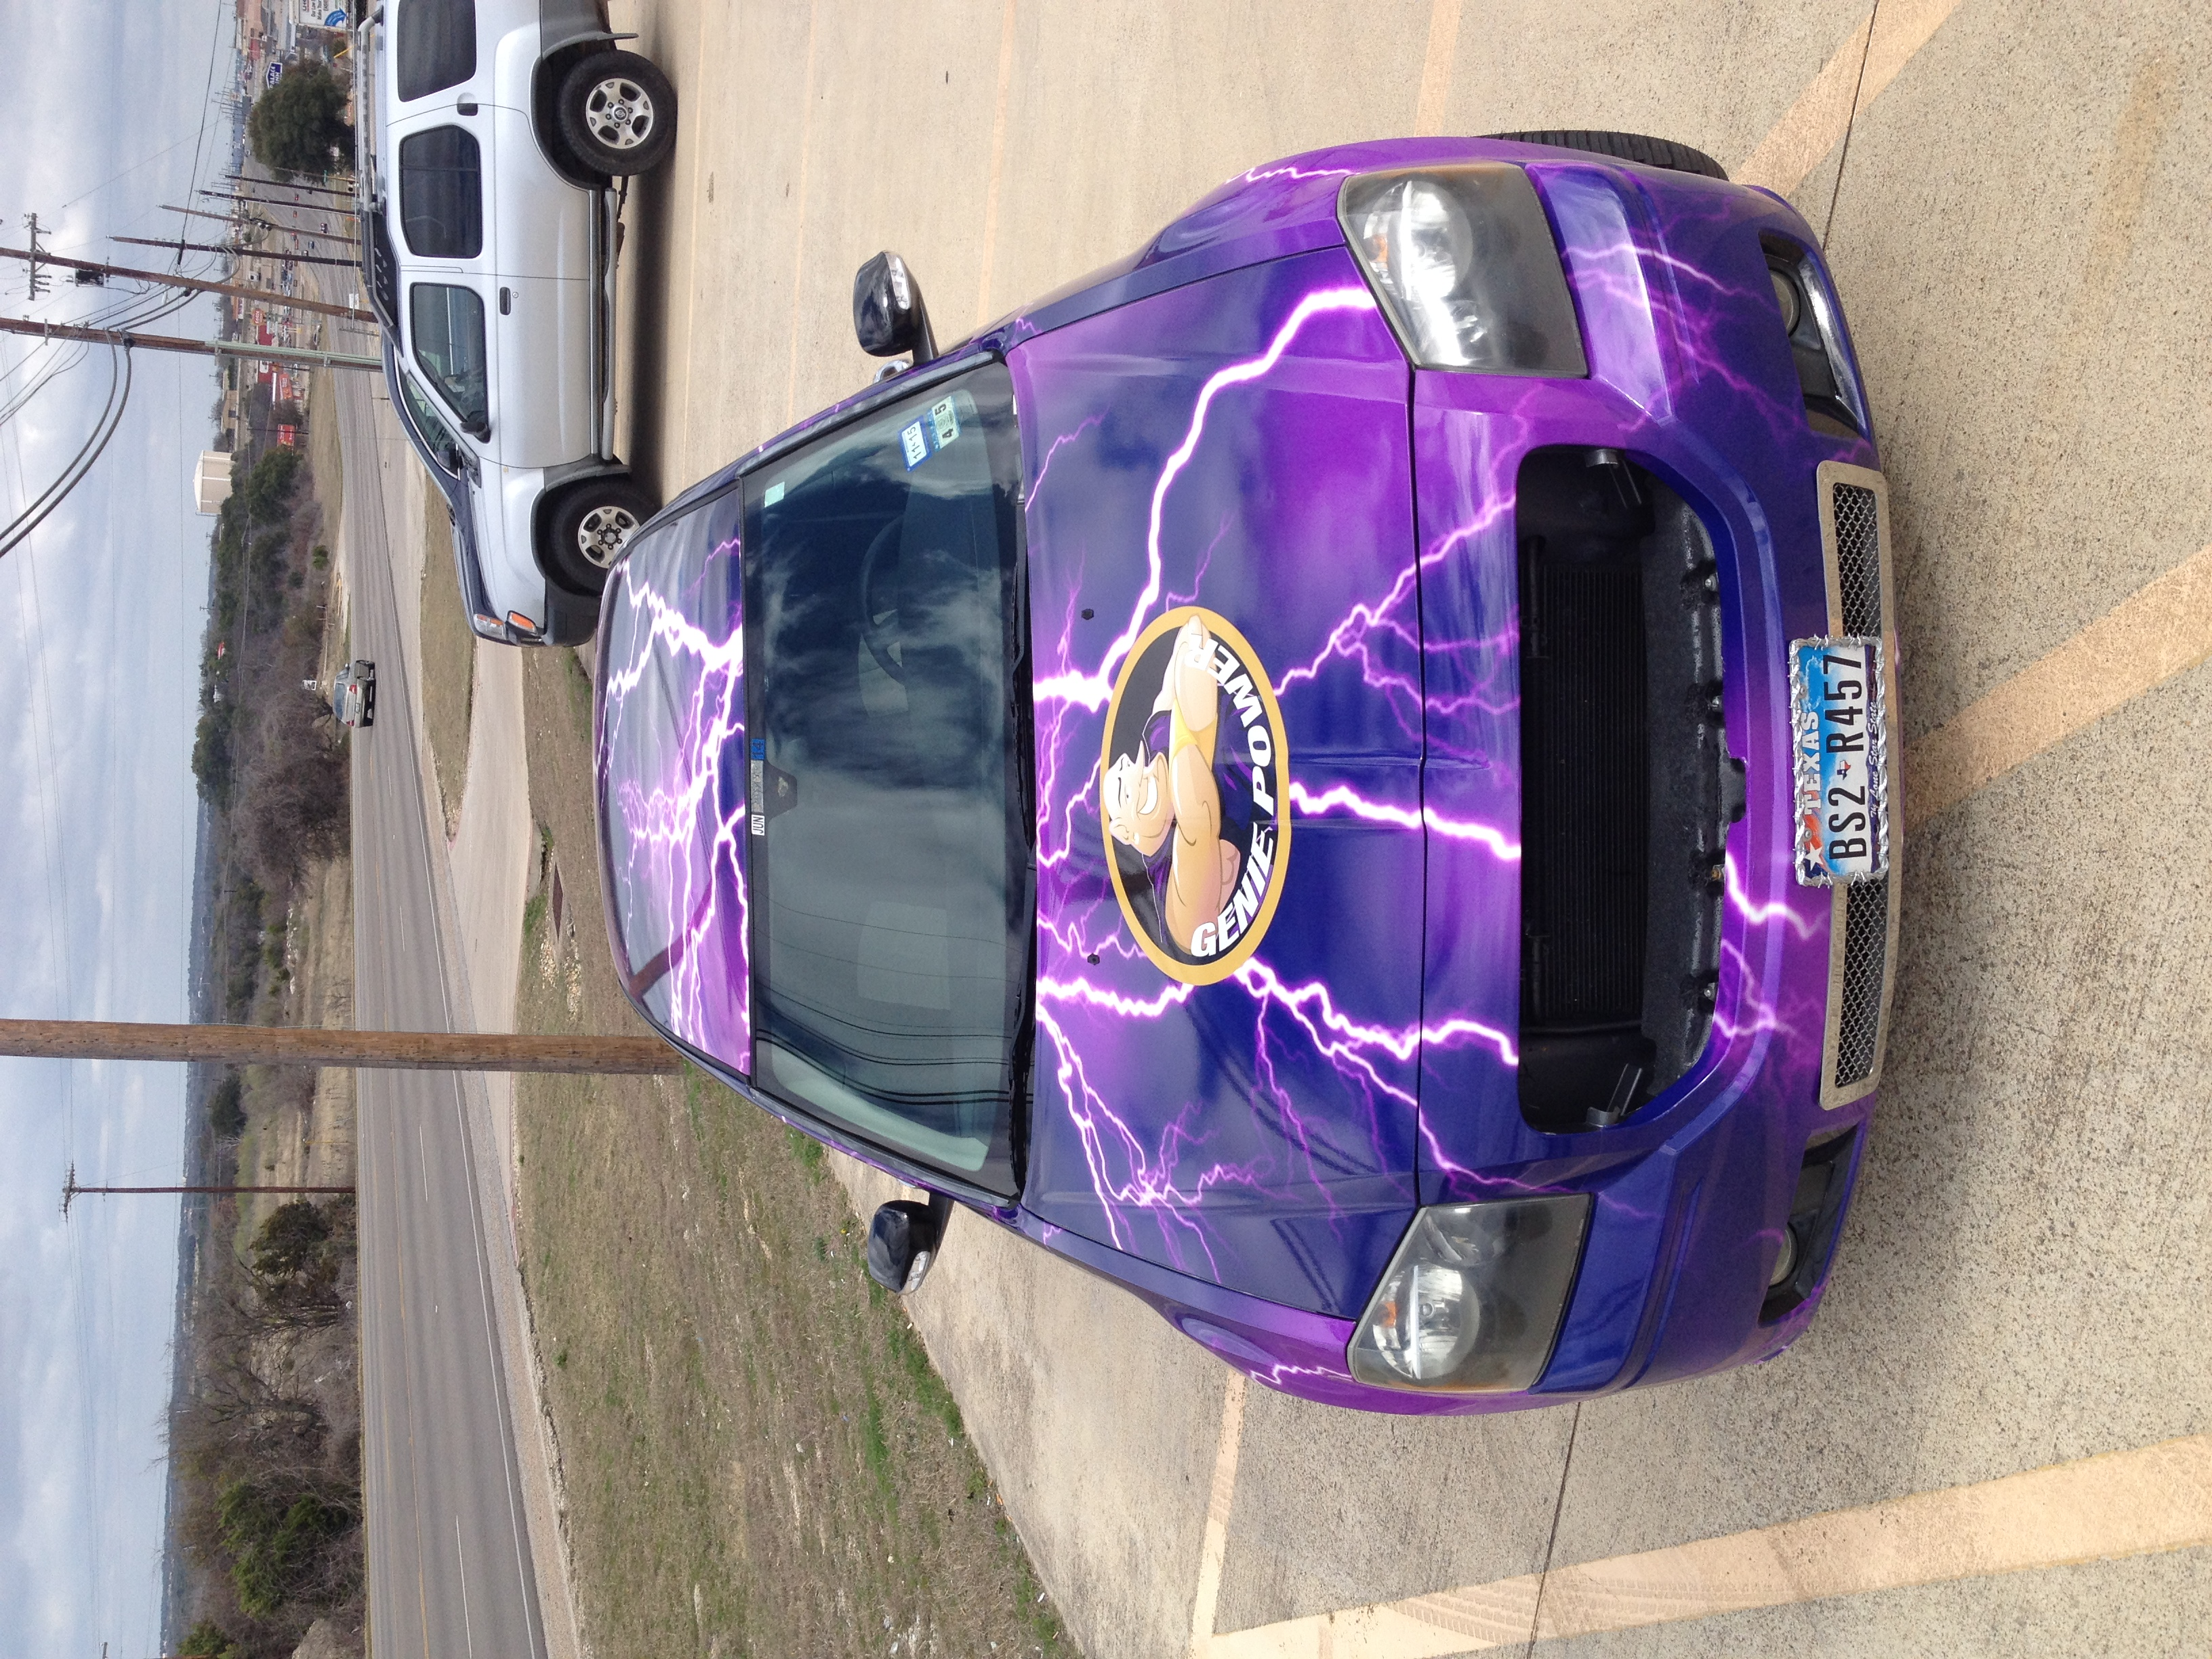 Dodge Magnum - Full Wrap (front view)